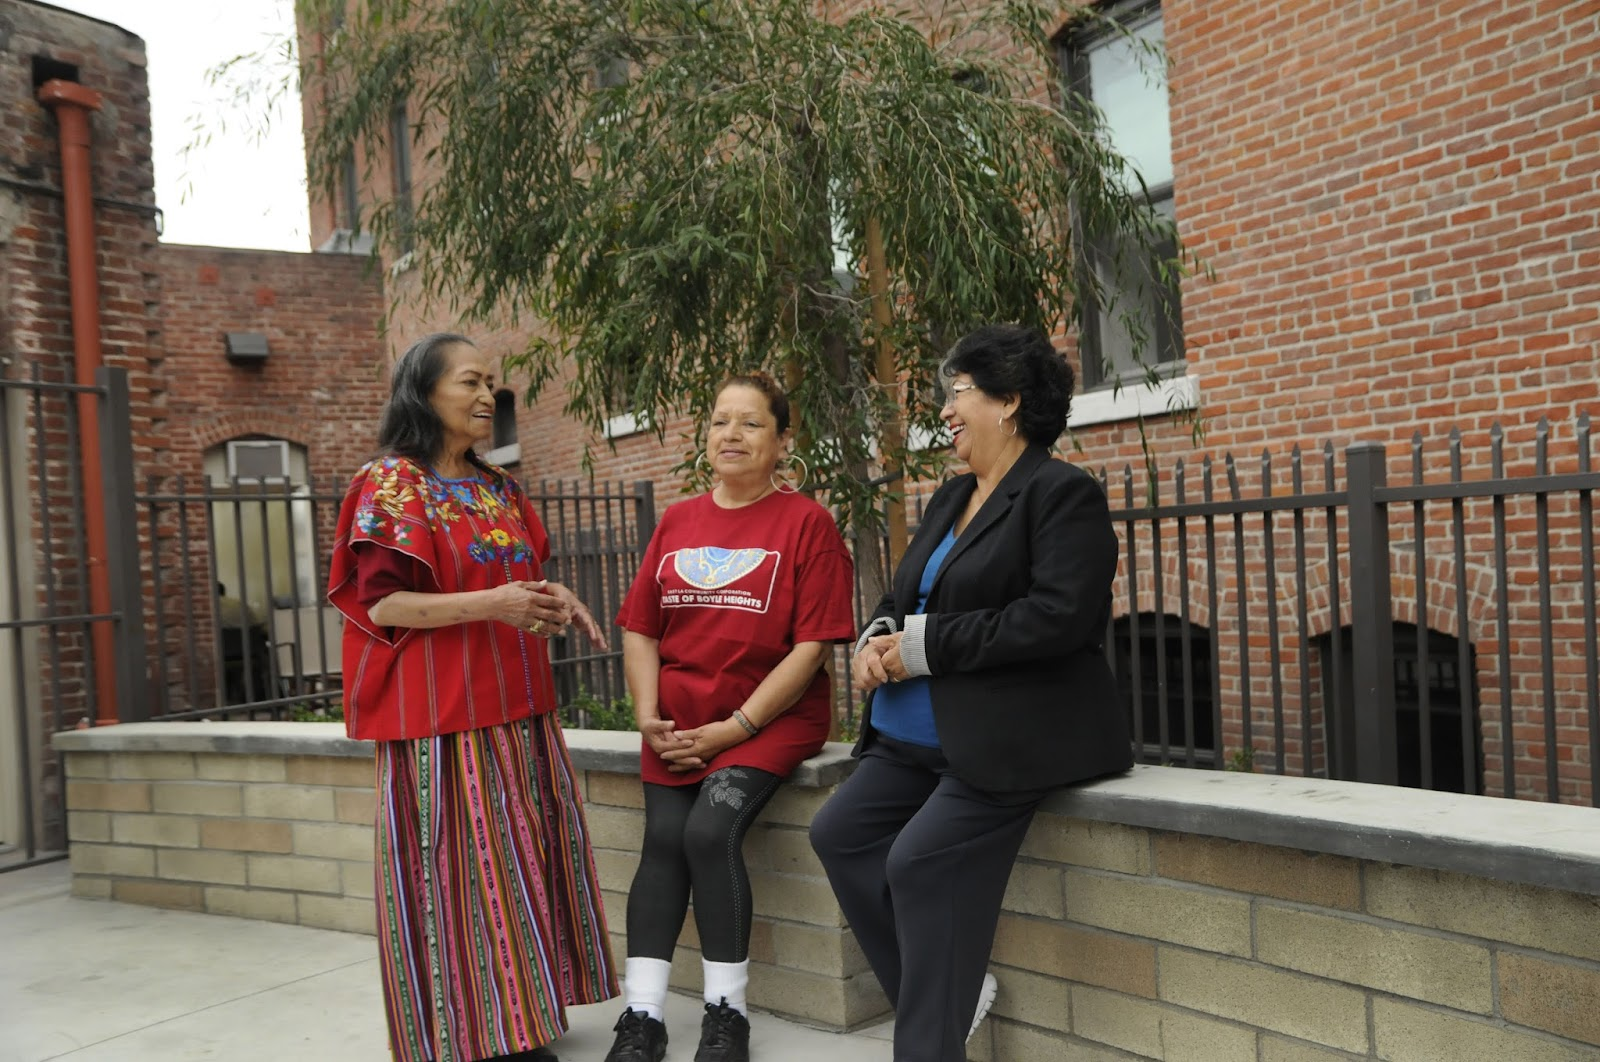 Three women in front of a brick building.